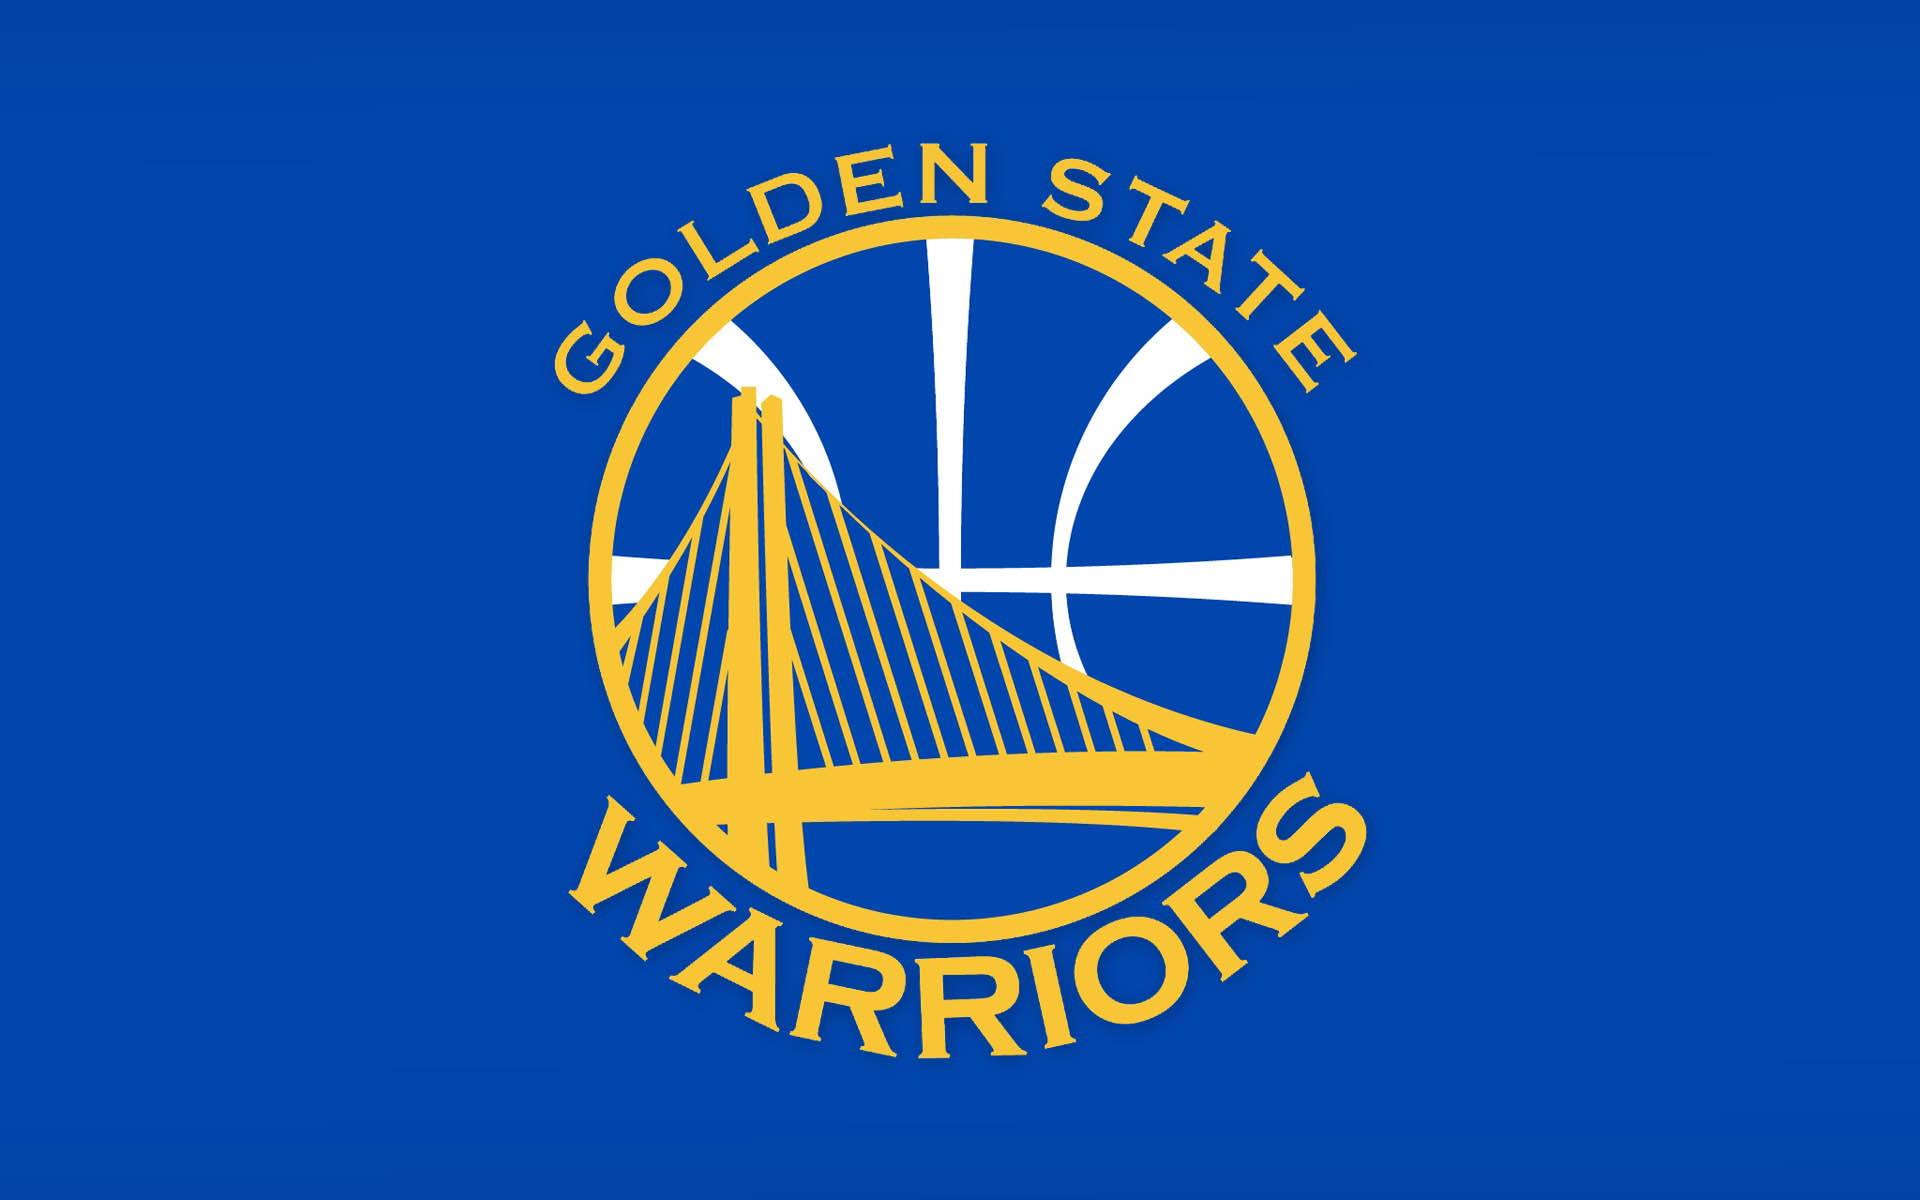 Golden State Warriors Logo Wallpaper